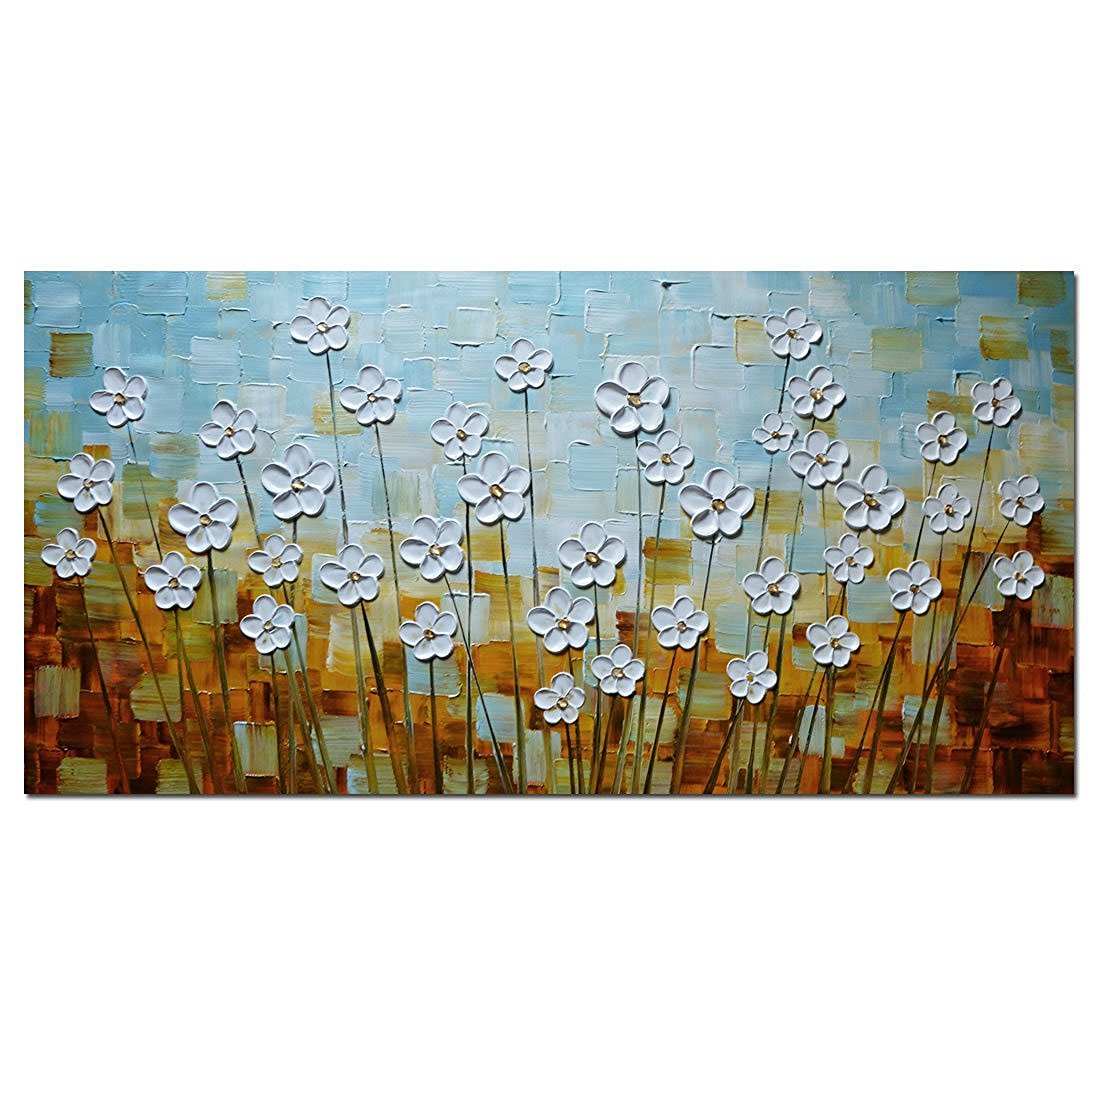 Cheap Painting White Flowers Find Painting White Flowers Deals On